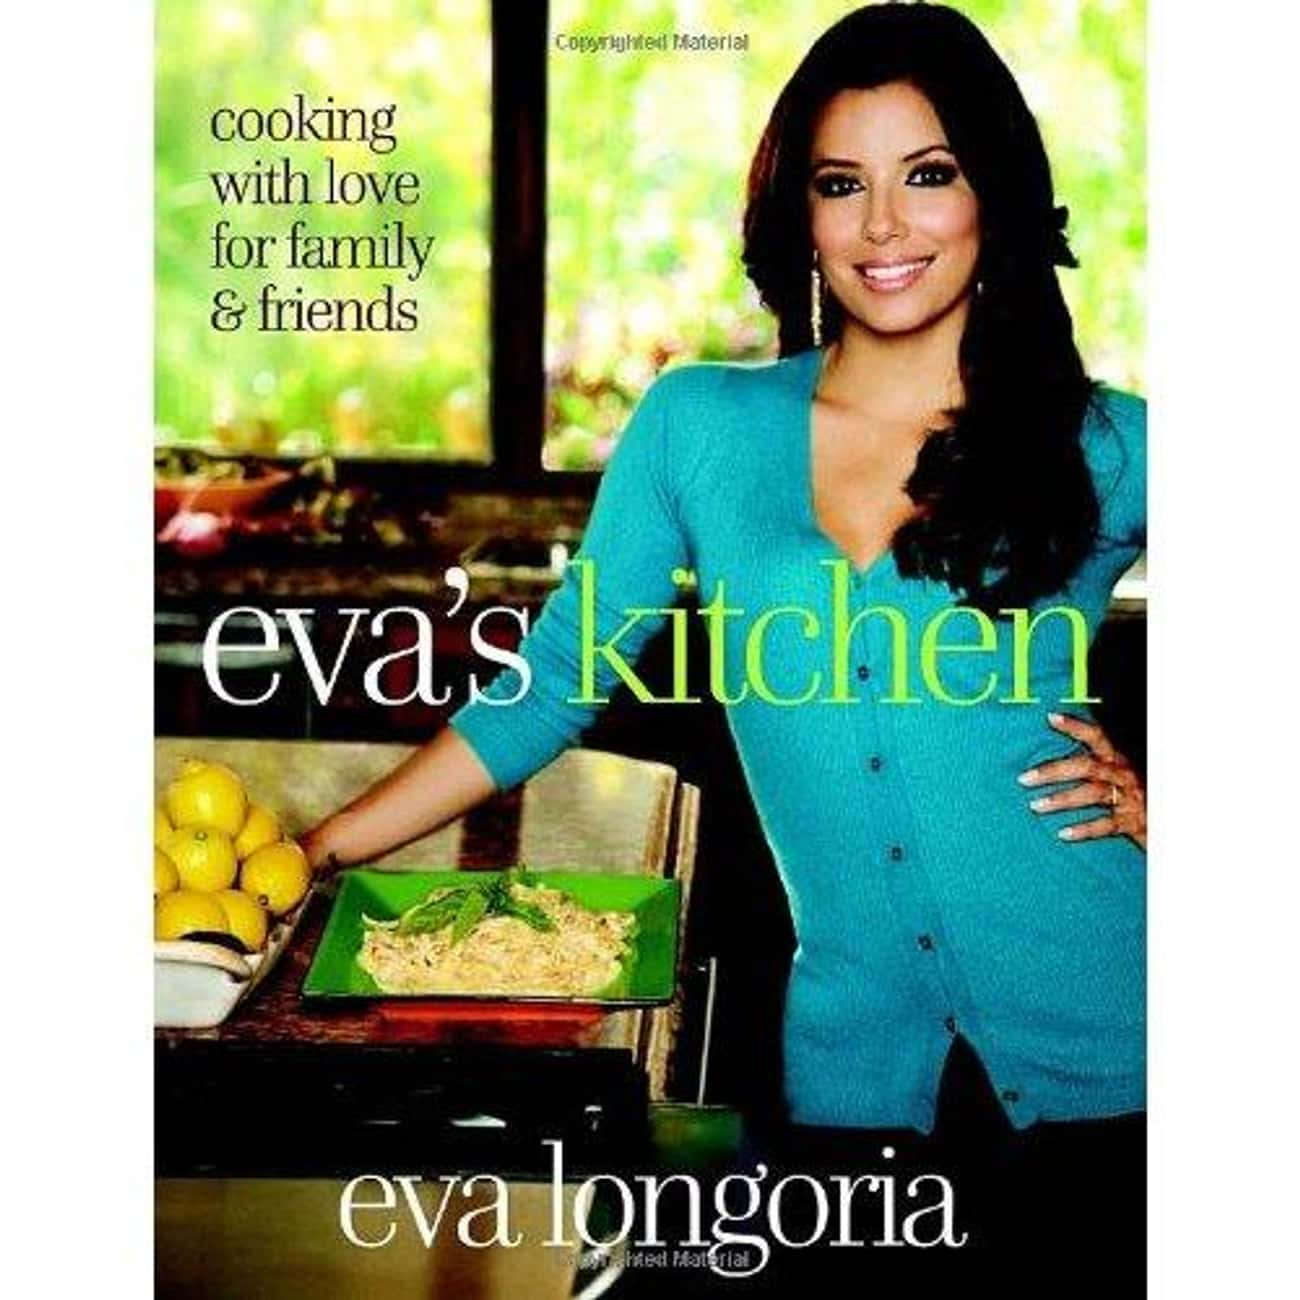 Eva Longoria is listed (or ranked) 2 on the list 38 Celebrities Who Wrote Cookbooks